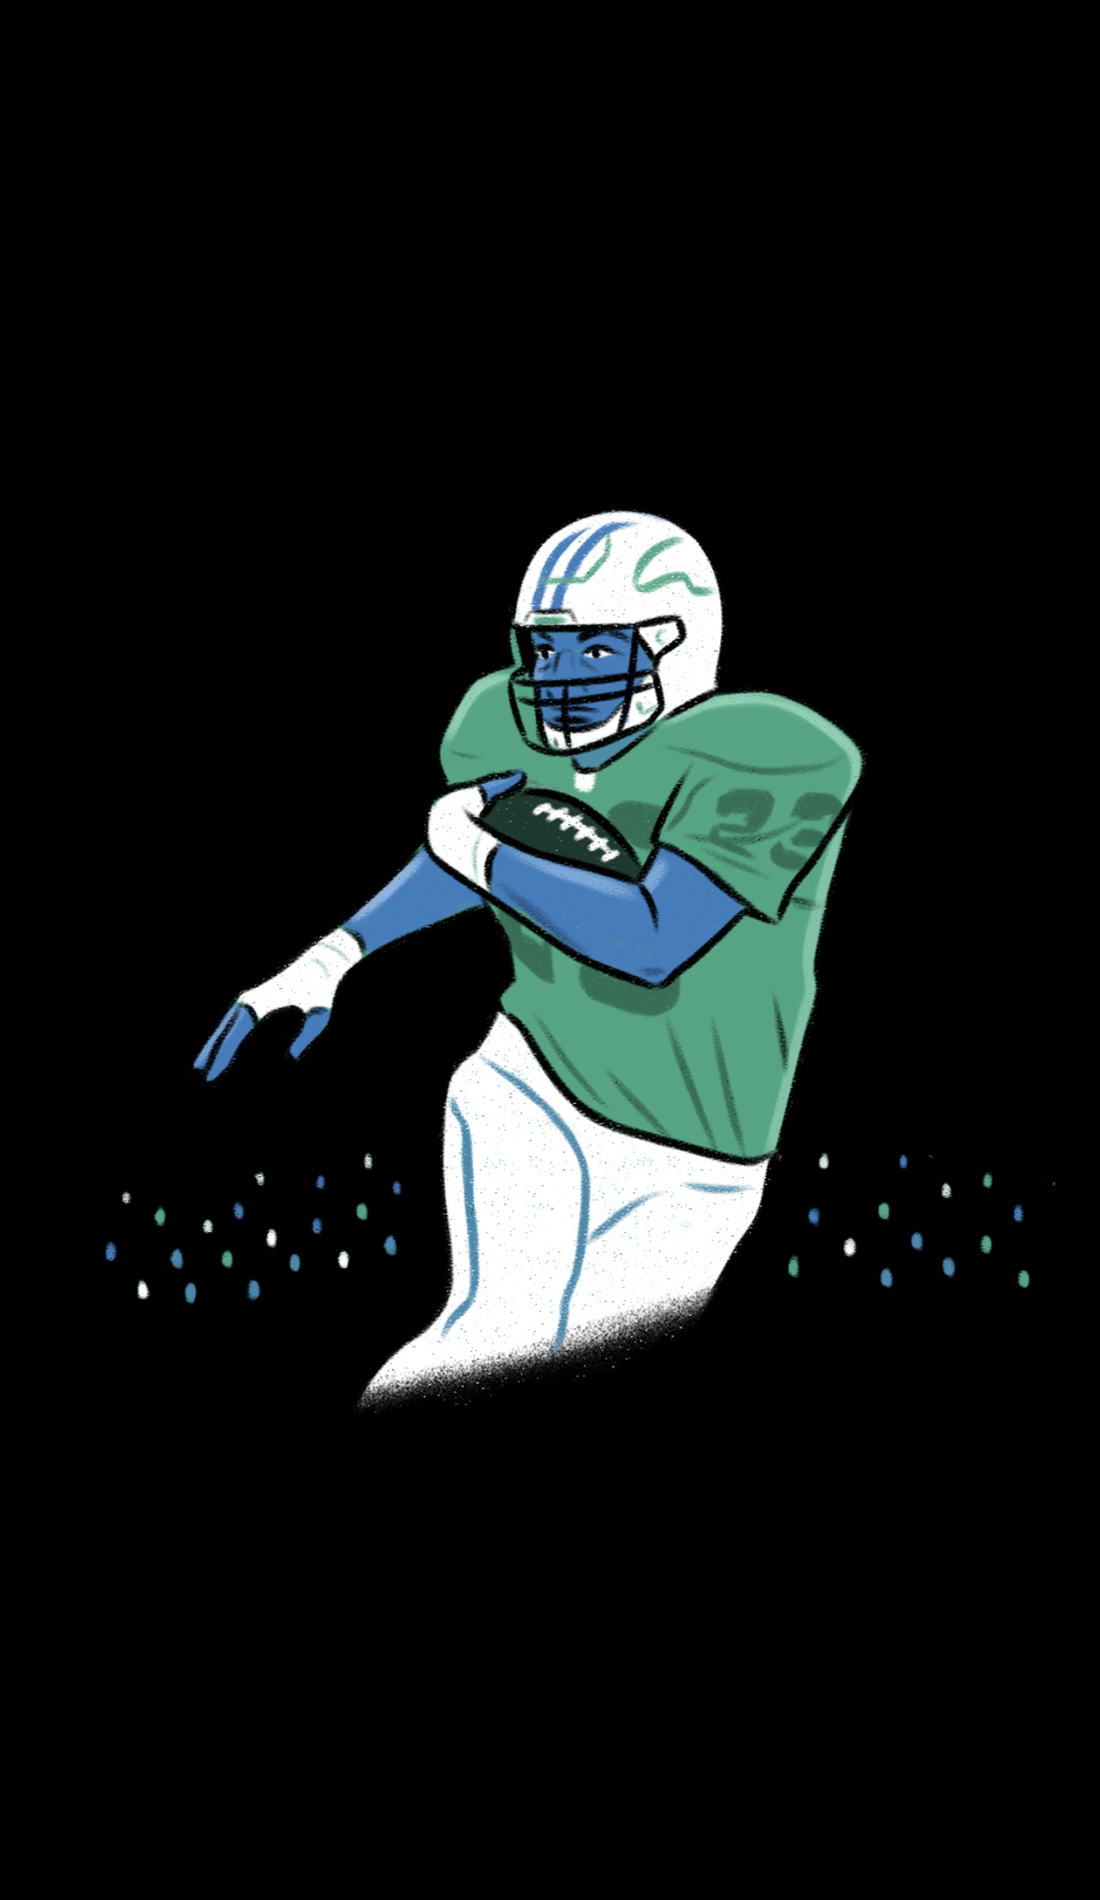 A Hawaii Rainbow Warriors Football live event